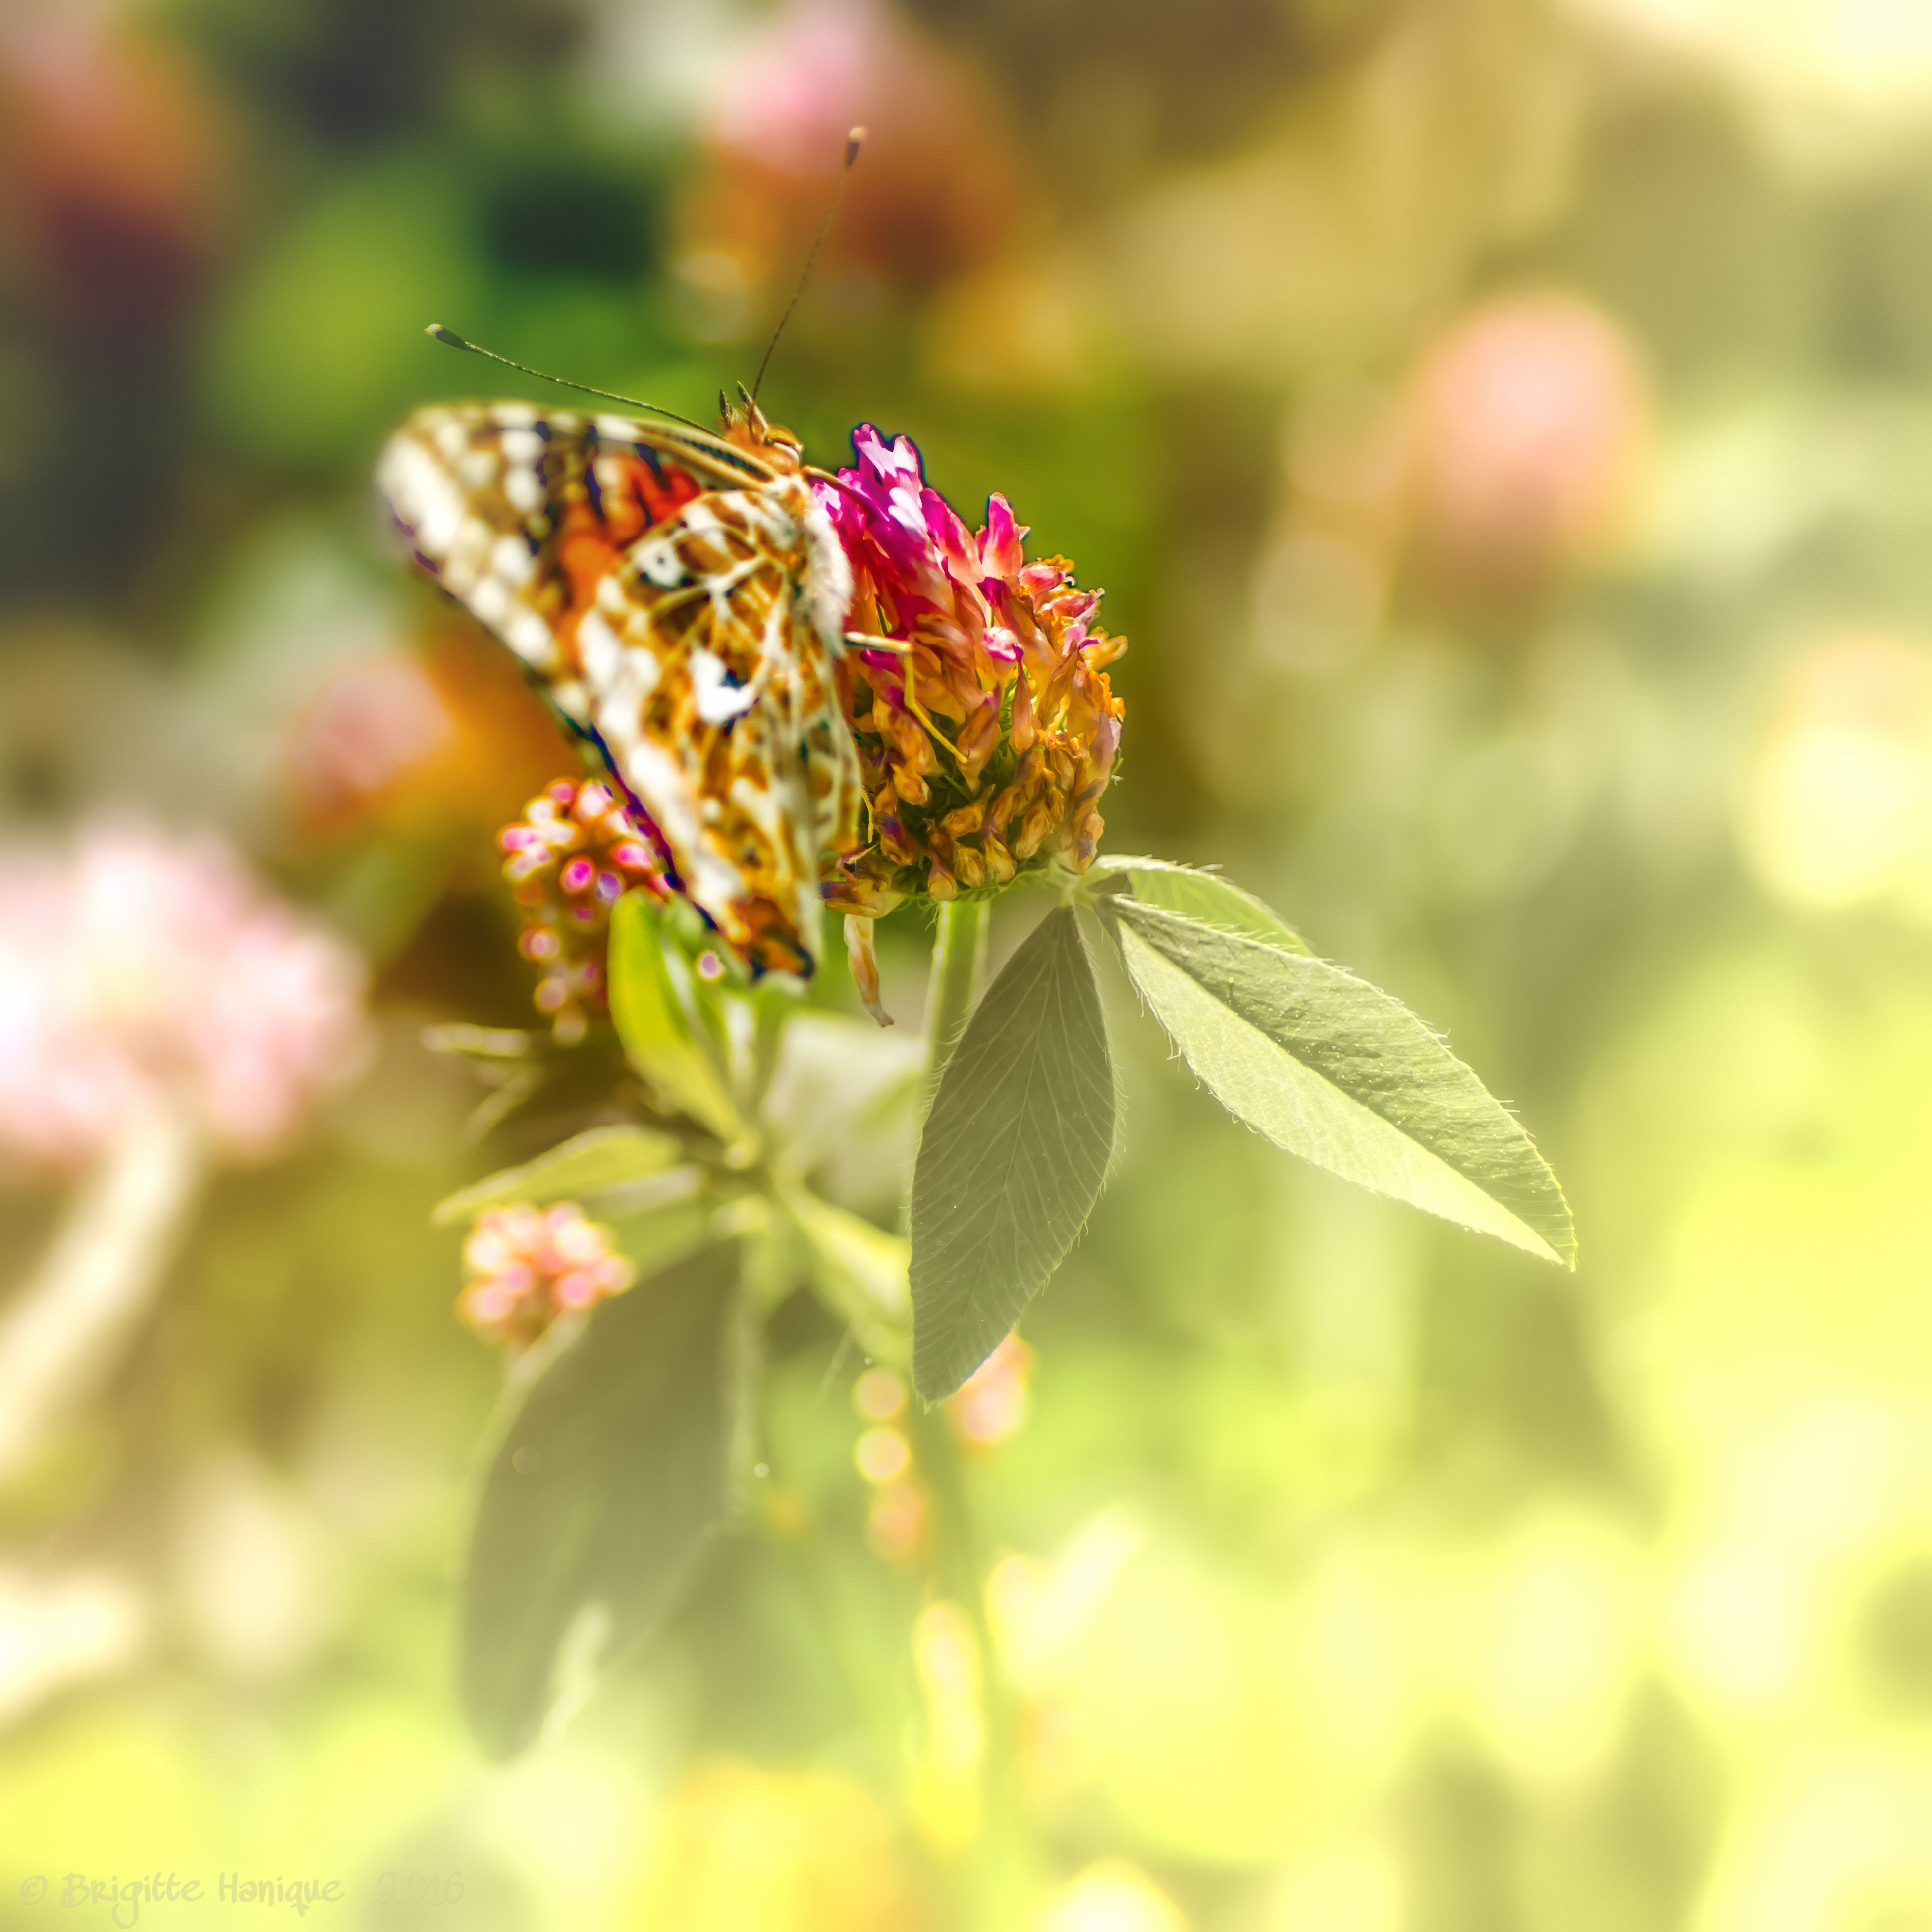 flower, leaf, freshness, fragility, growth, close-up, plant, beauty in nature, focus on foreground, season, nature, stem, springtime, in bloom, petal, day, botany, flower head, pink color, green color, red, green, outdoors, plant life, blossom, tranquility